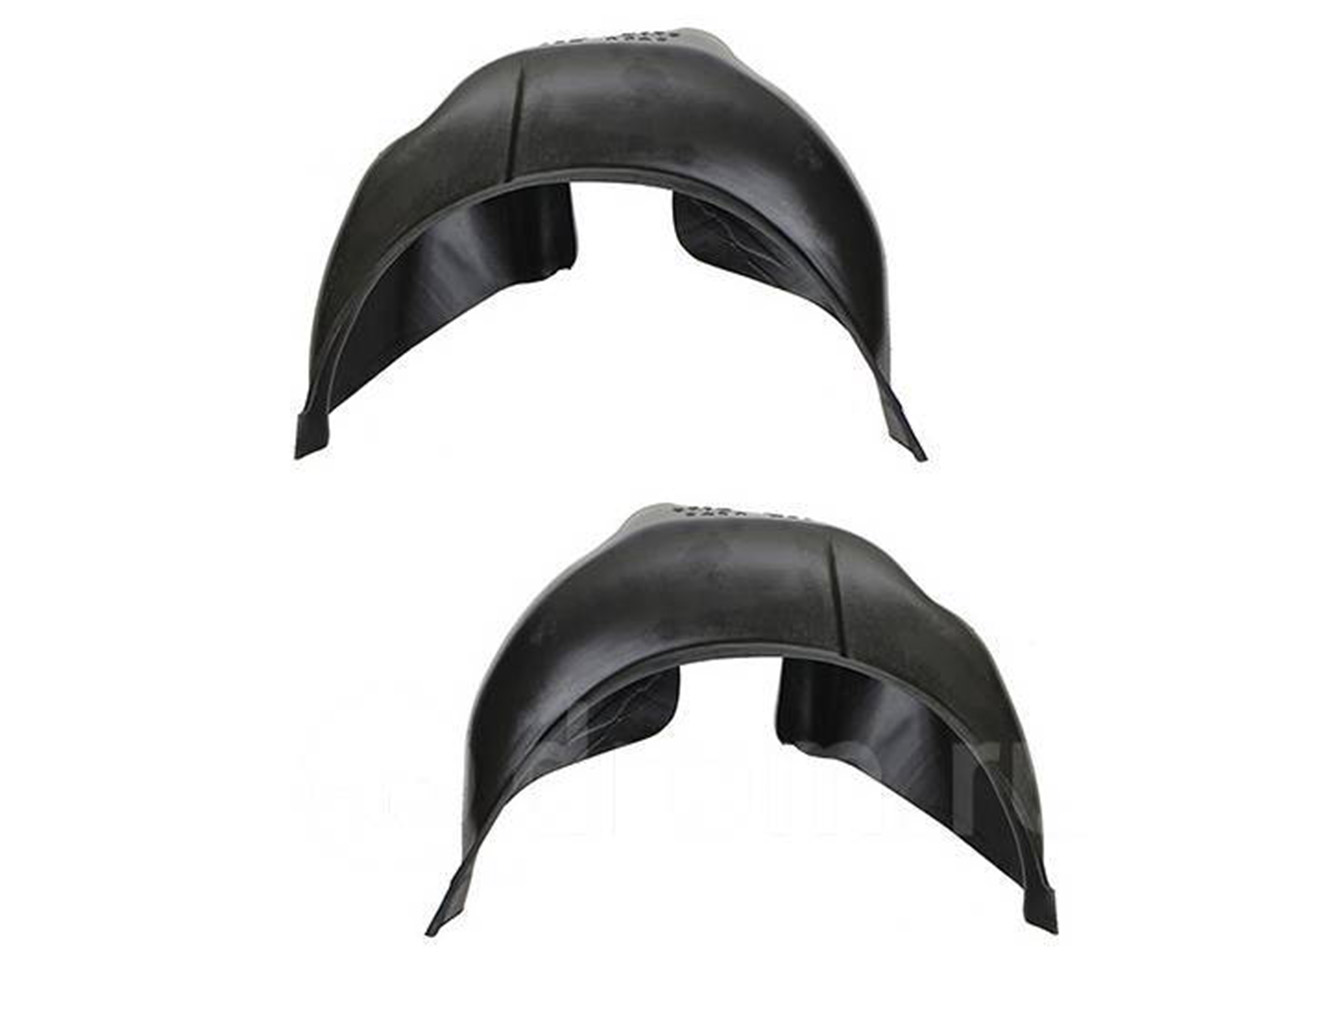 Lada Priora 2170 Rear Splash Guard Set